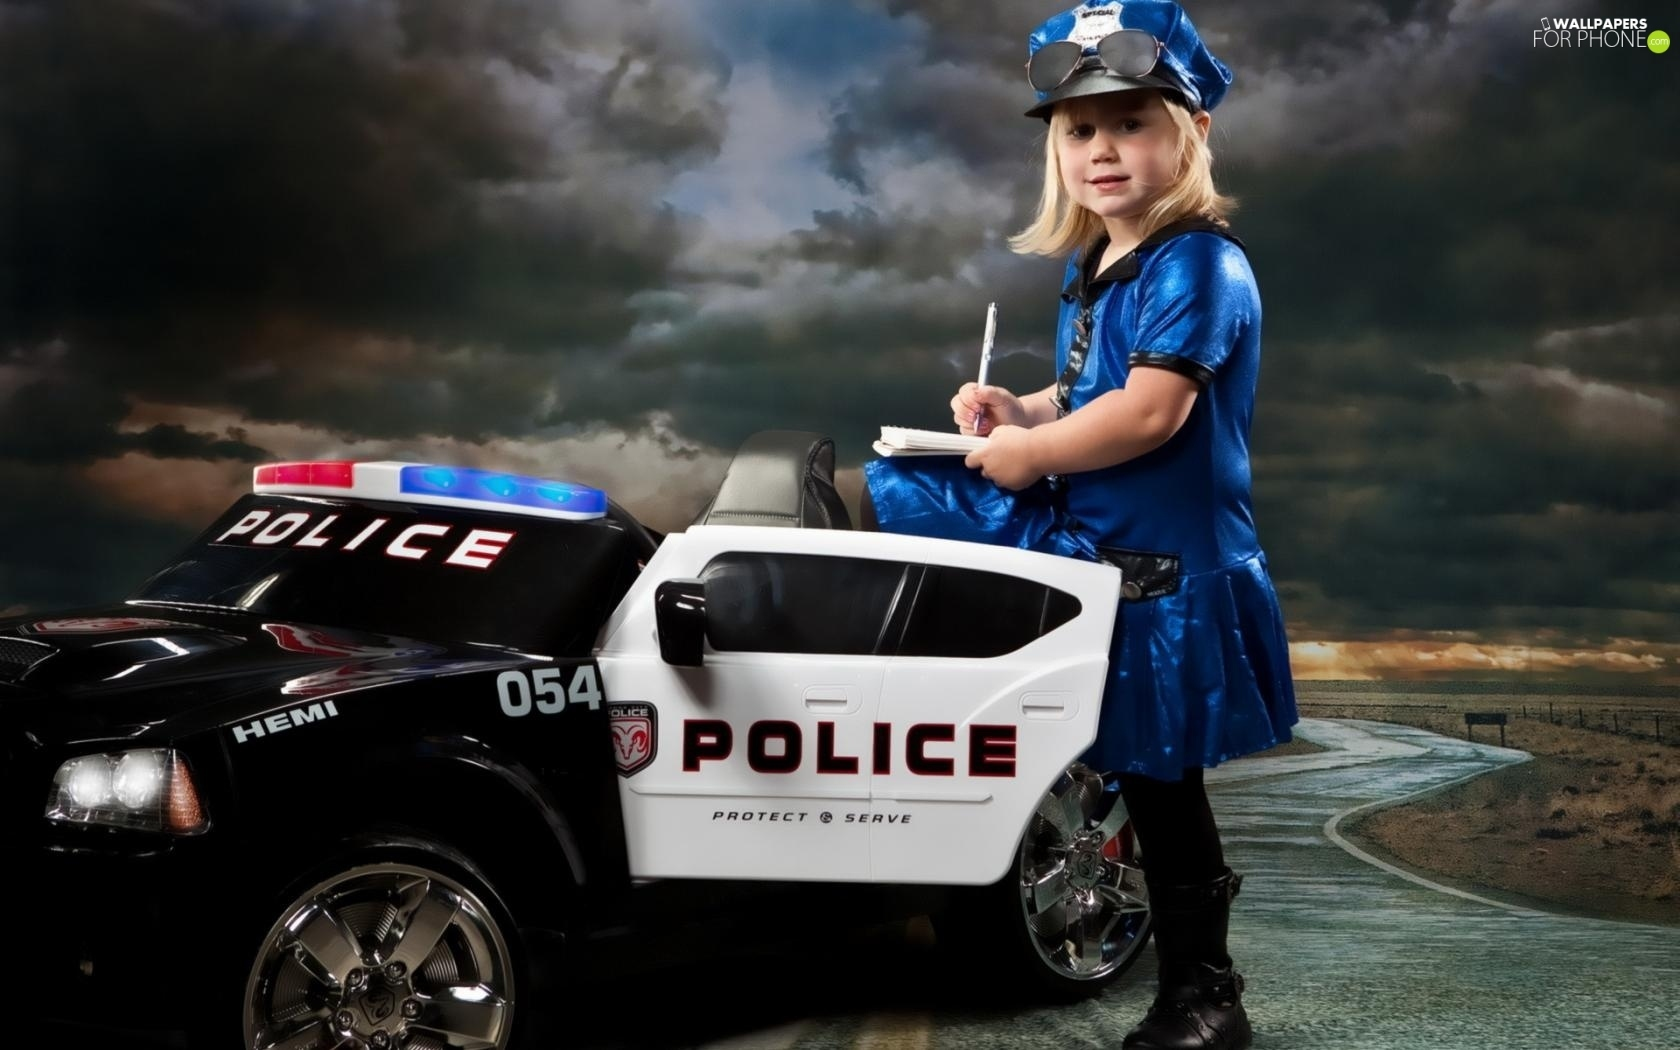 Police, girl, Automobile